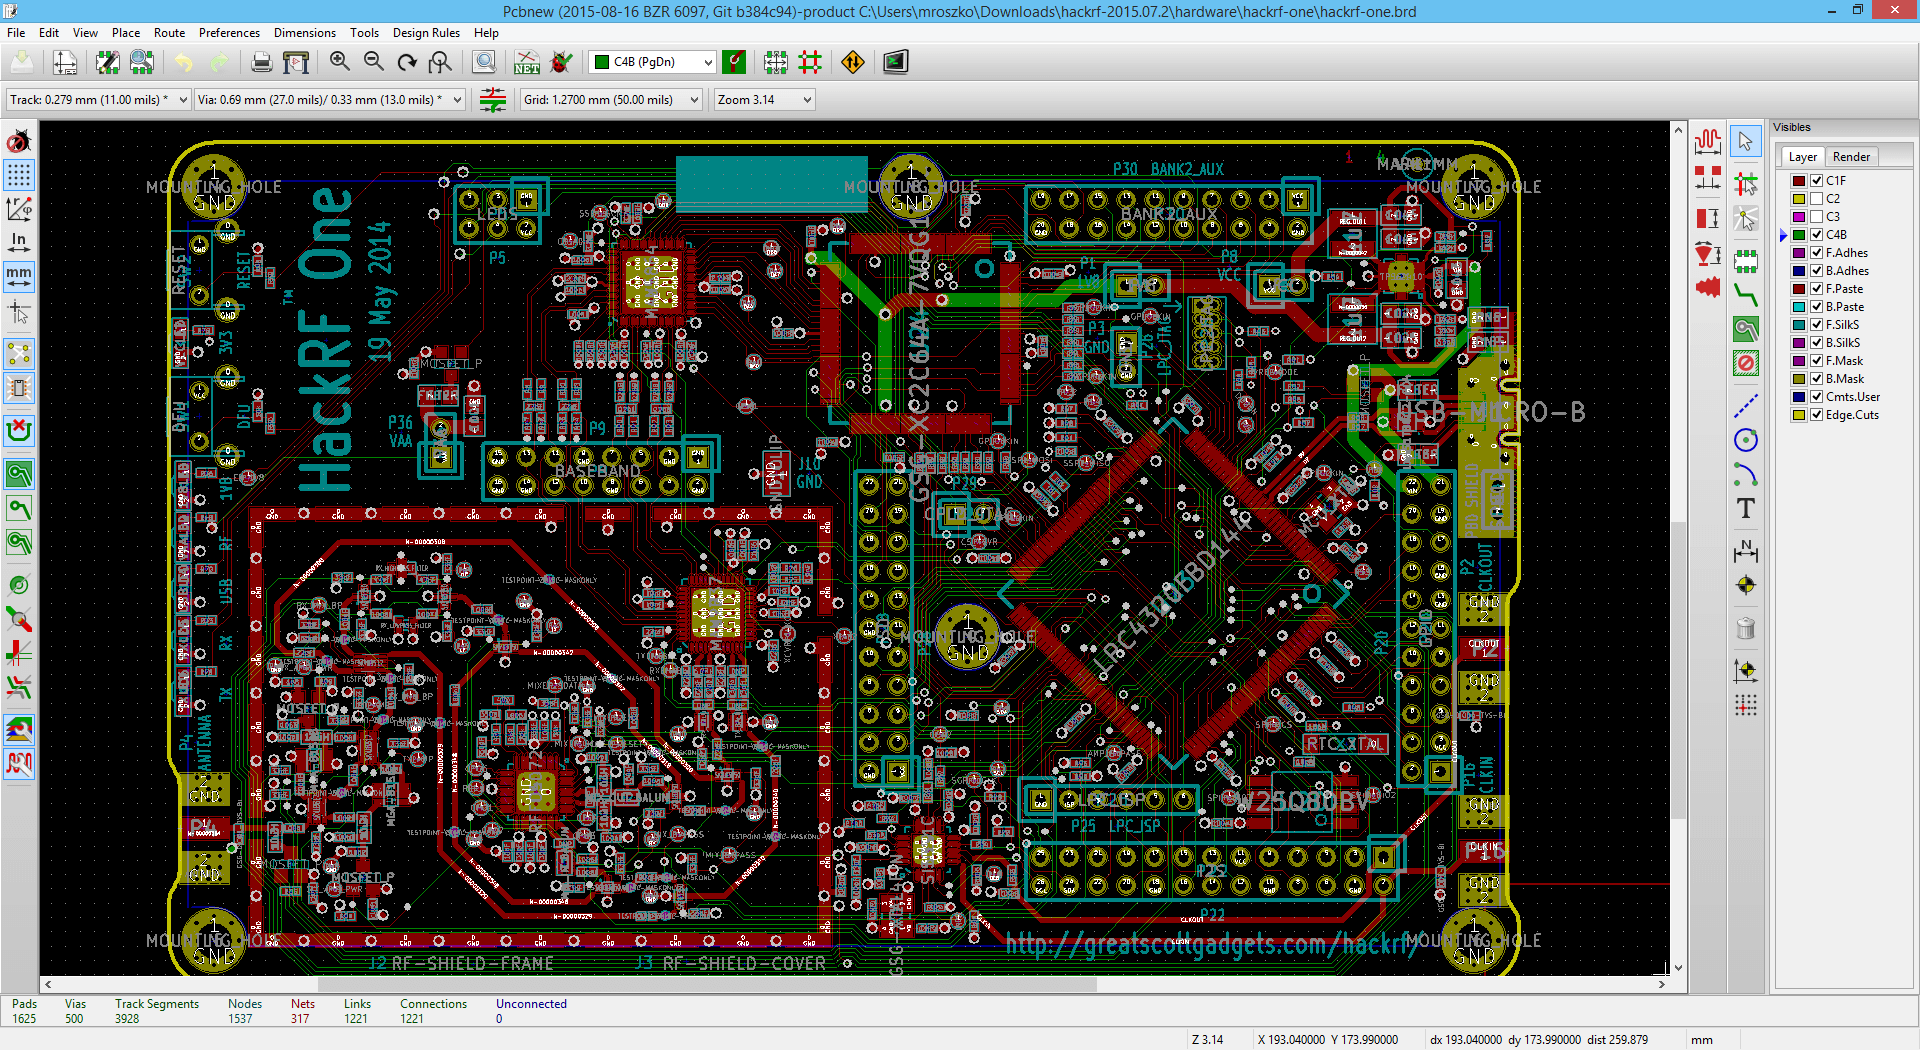 Screenshot showing hackRF PCB layout loaded in pcbnew